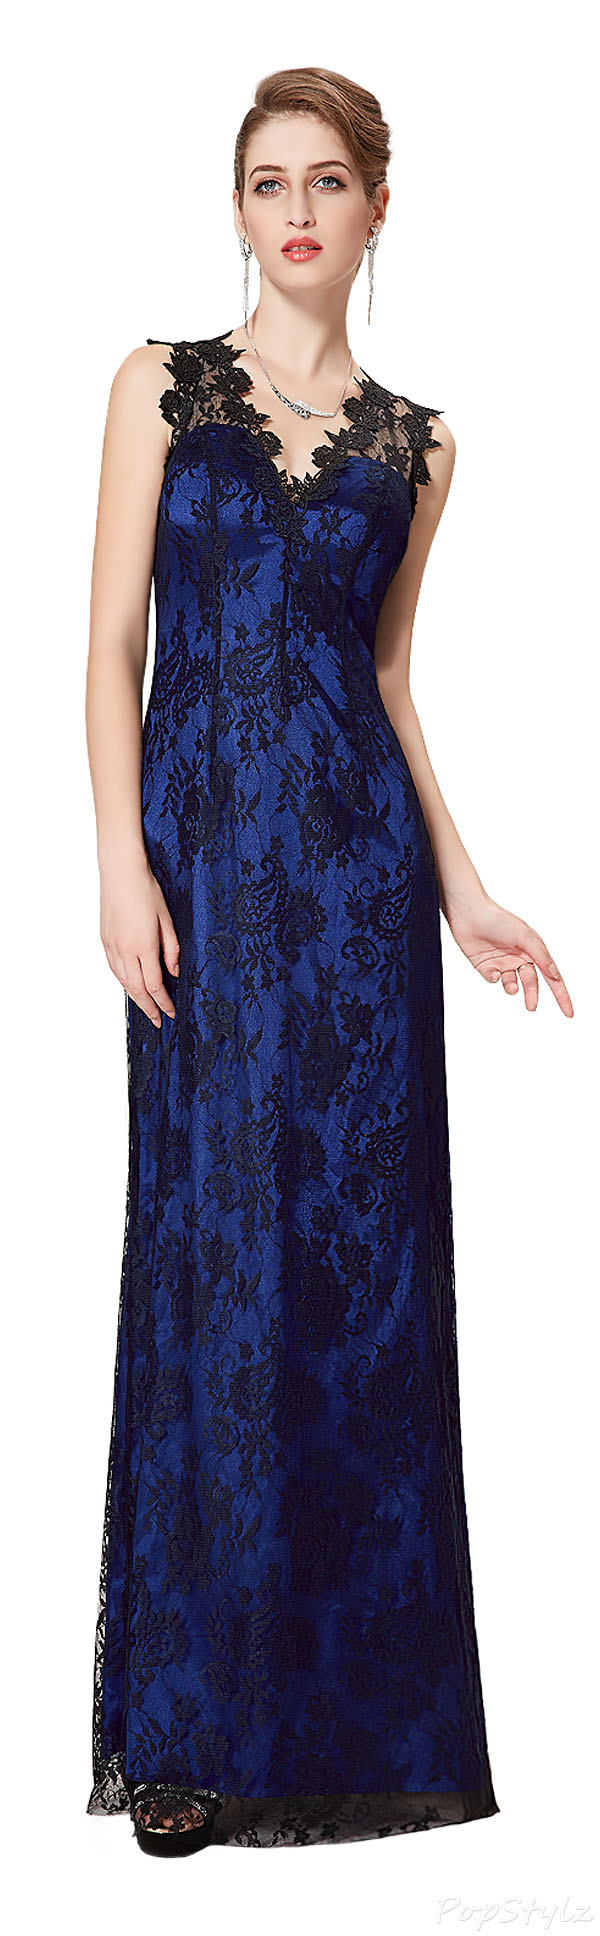 Ever Pretty 08325 Sleeveless Lace Formal Evening Dress